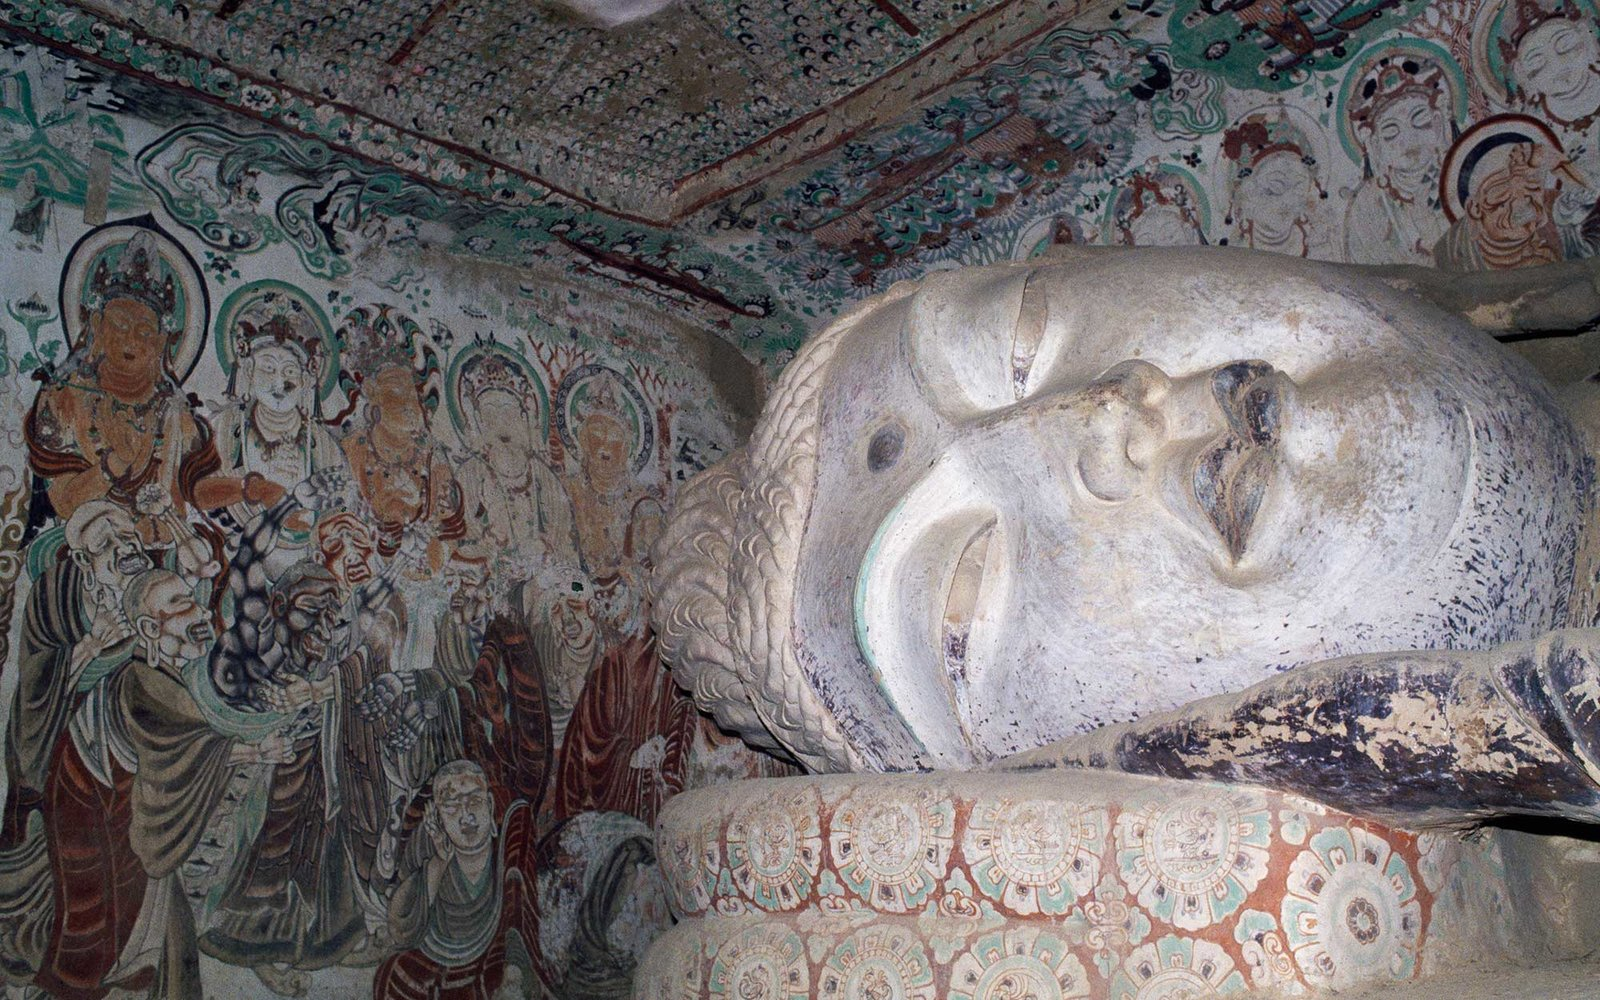 CHINA - DECEMBER 10: Sleeping Buddha, face detail, Mogao Caves, Dunhuang, Gansu Province, China. (Photo by DeAgostini/Getty Images)